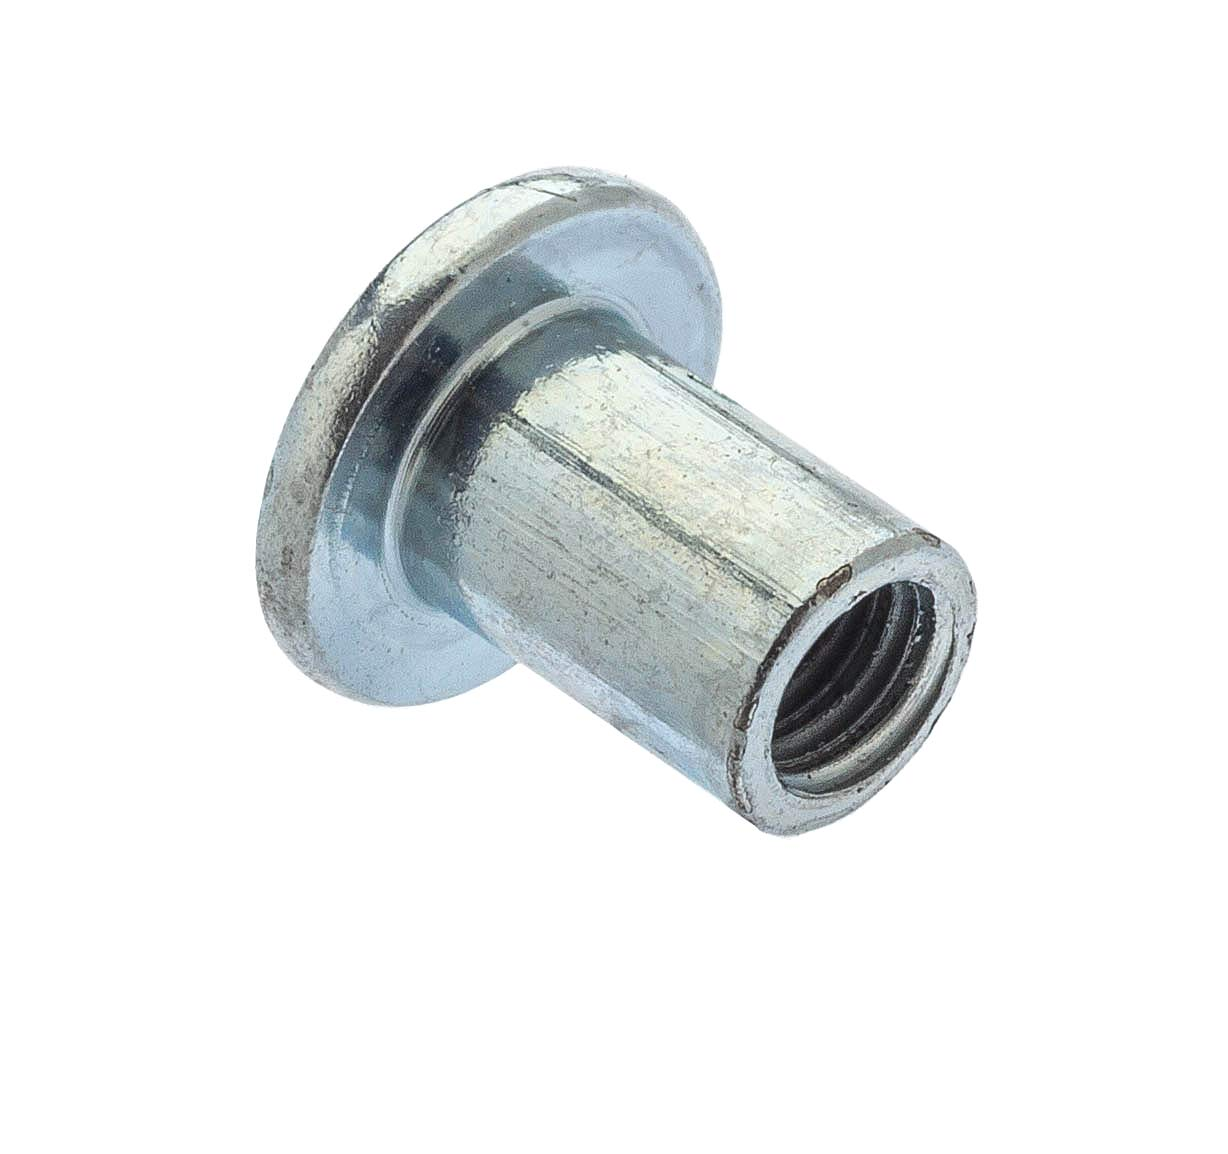 Stainless Steel AMPG Z4408SS-1032 Stainless Combo Drive Barrel Bolt